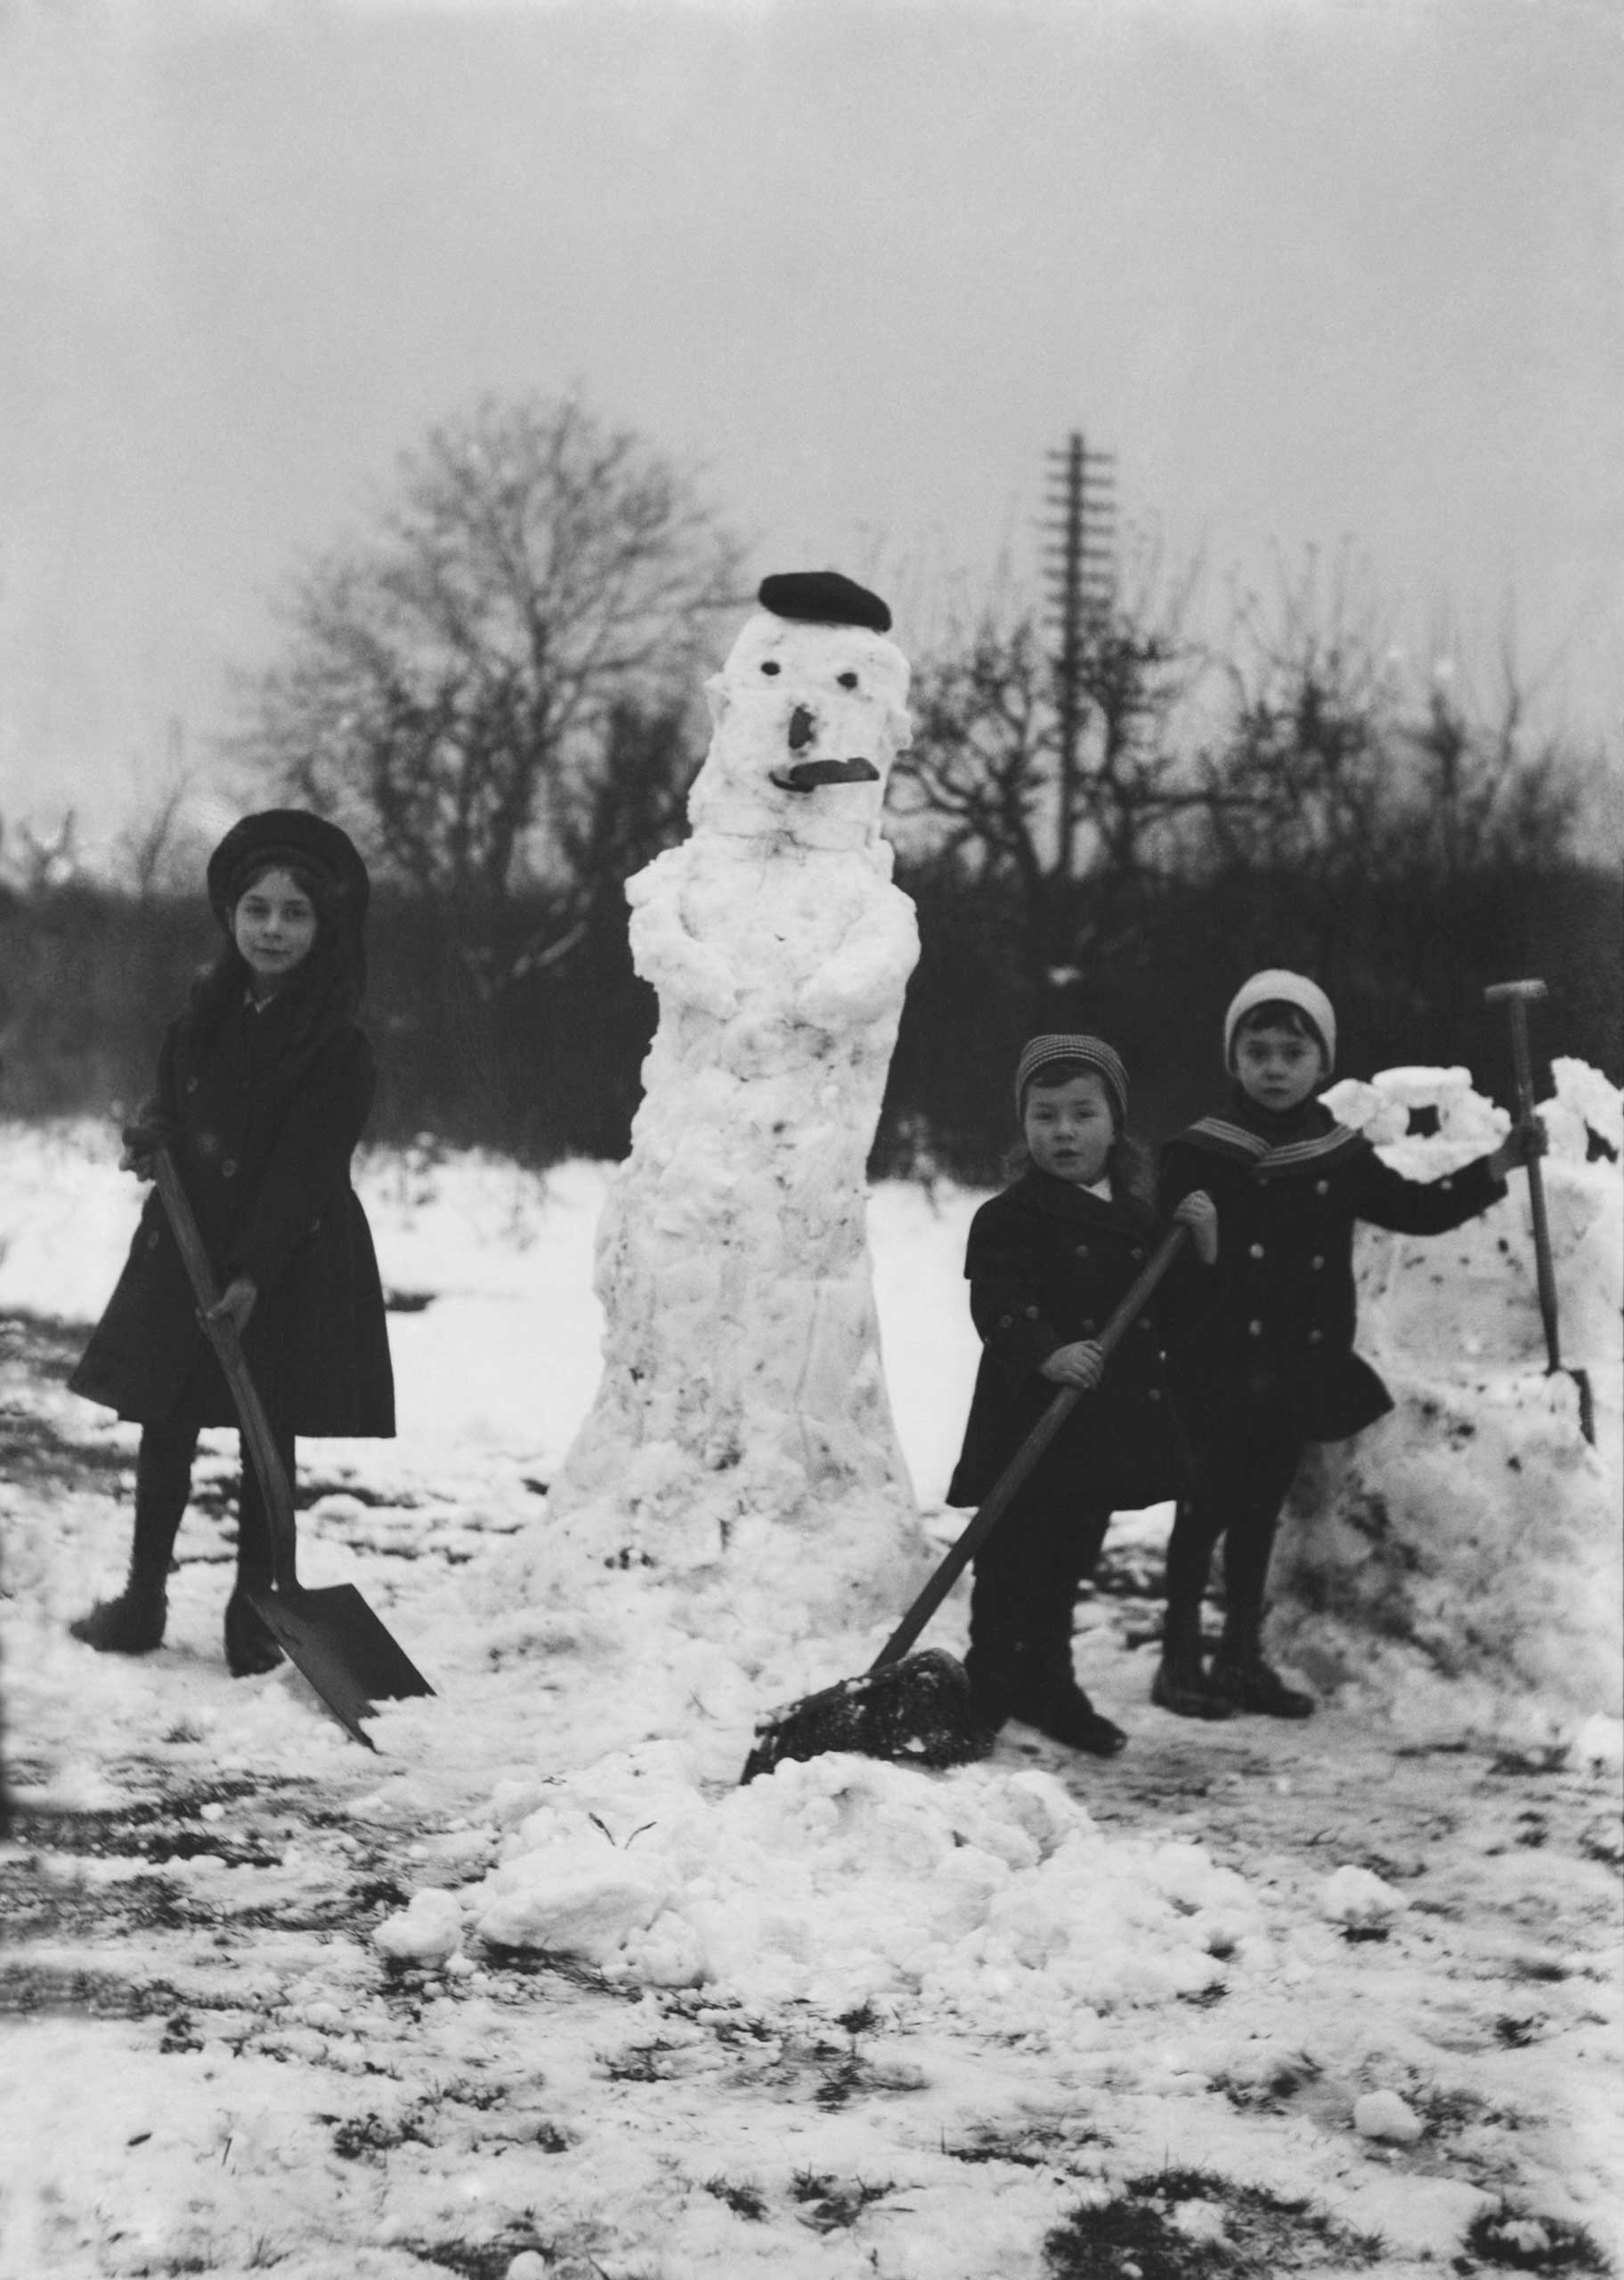 A group of young children wrapped up warmly, holding shovels and a broom building snowmen in a snow covered field; Europe circa 1900.